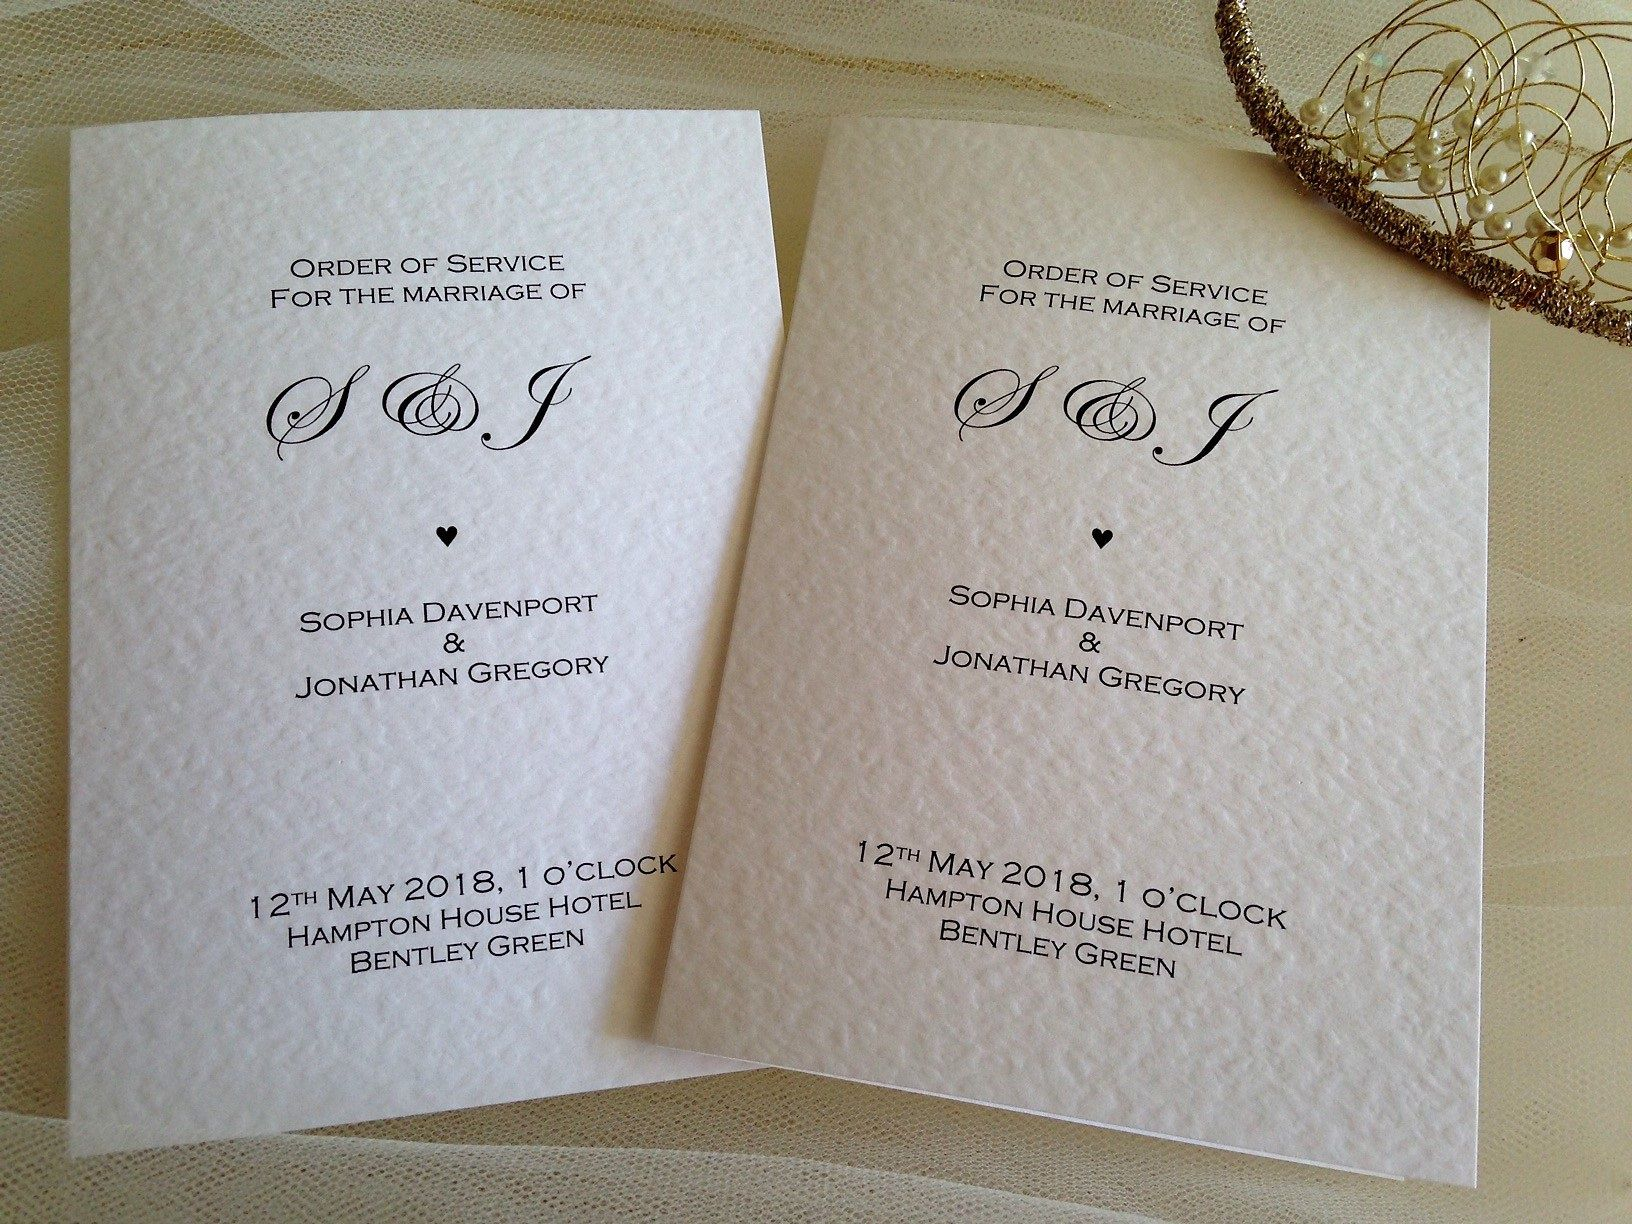 006 Surprising Traditional Wedding Order Of Service Template Uk Concept Full